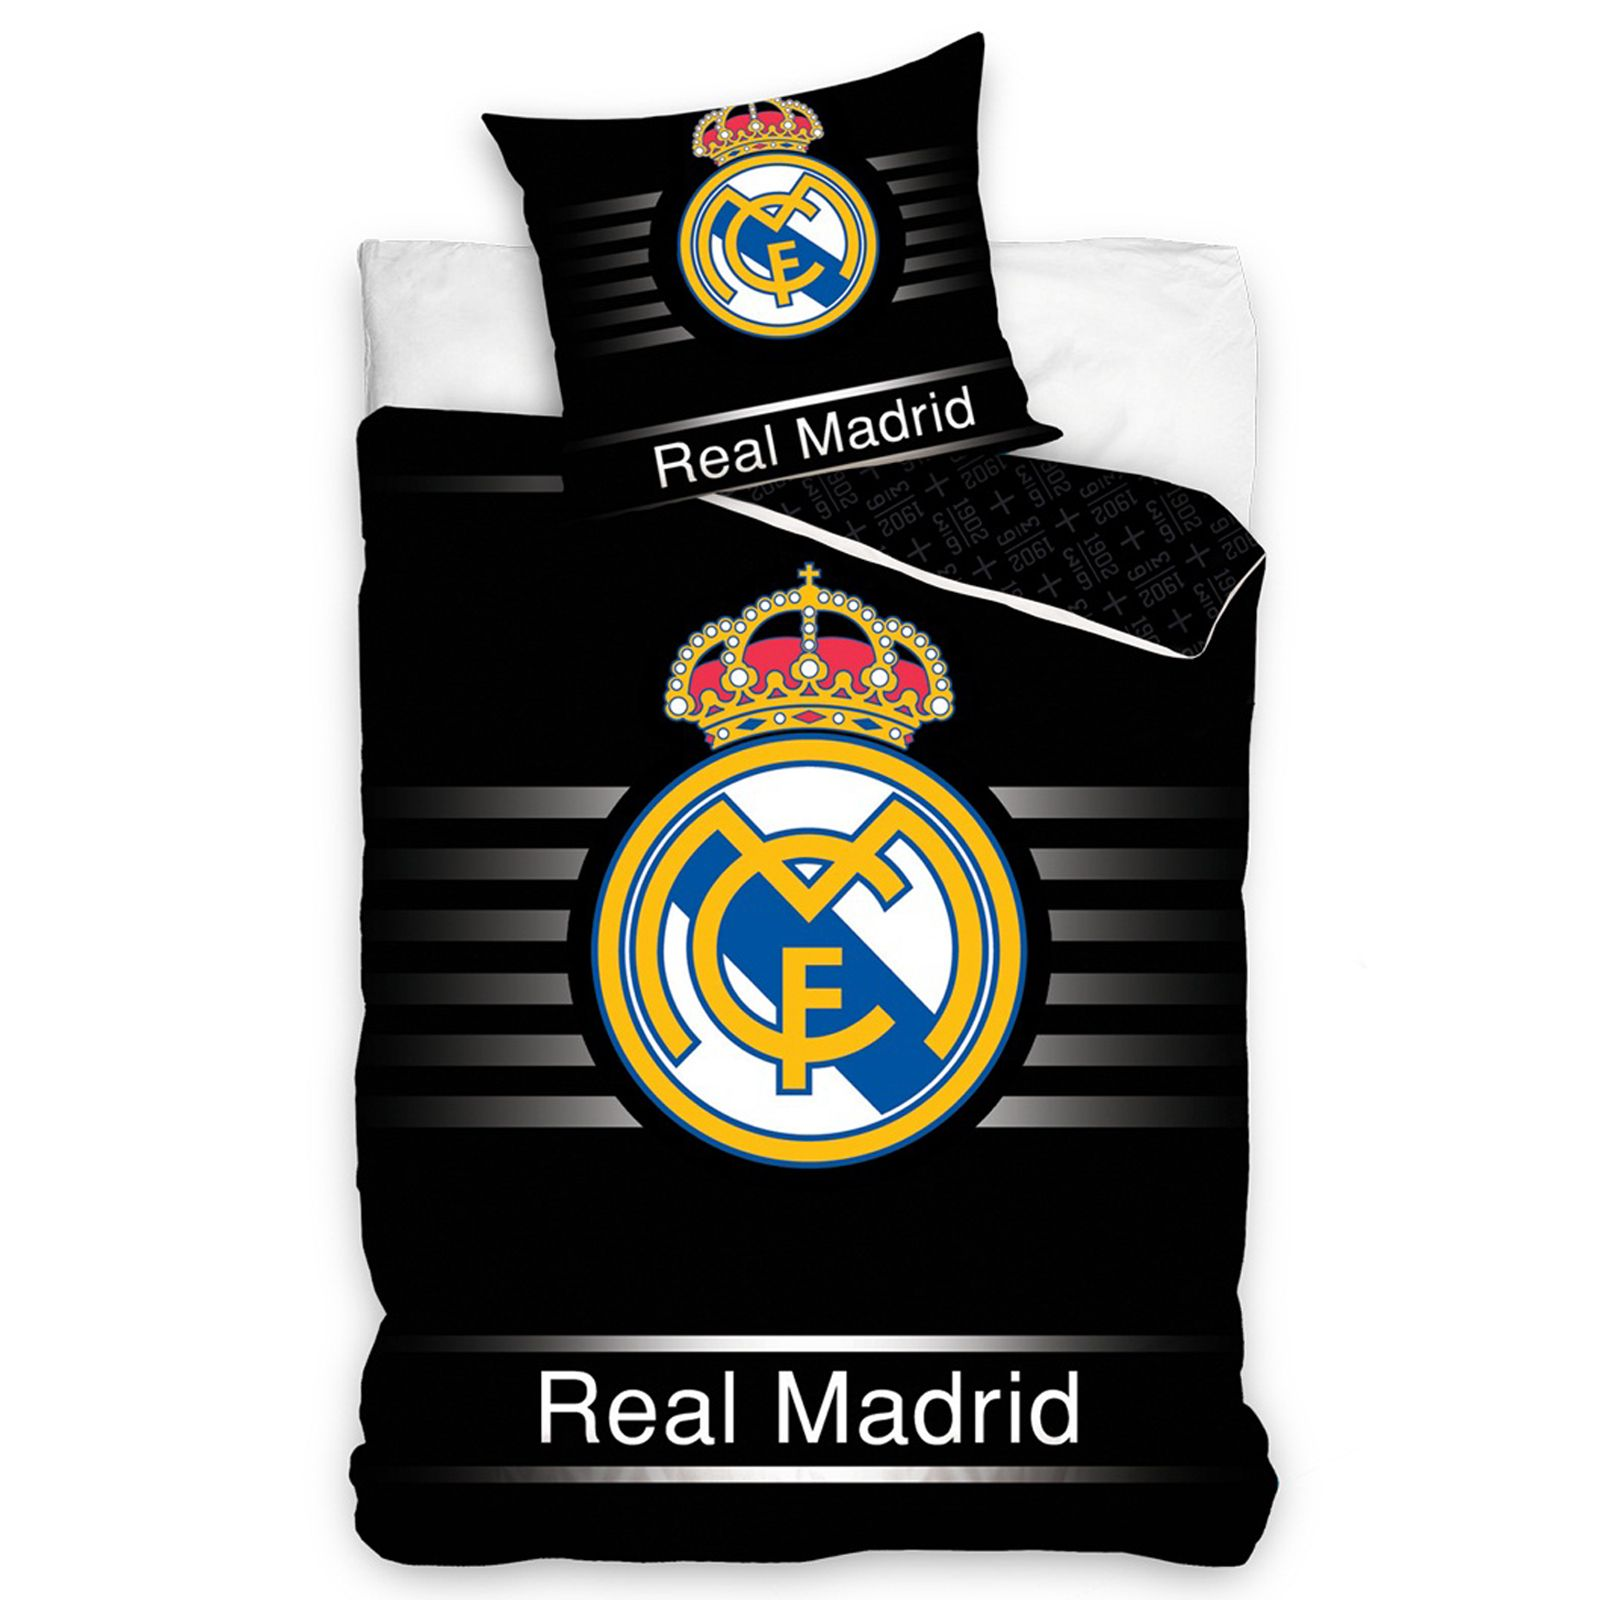 Oficial real madrid individual doble funda de edred n football ropa de cama ebay - Fundas del real madrid ...